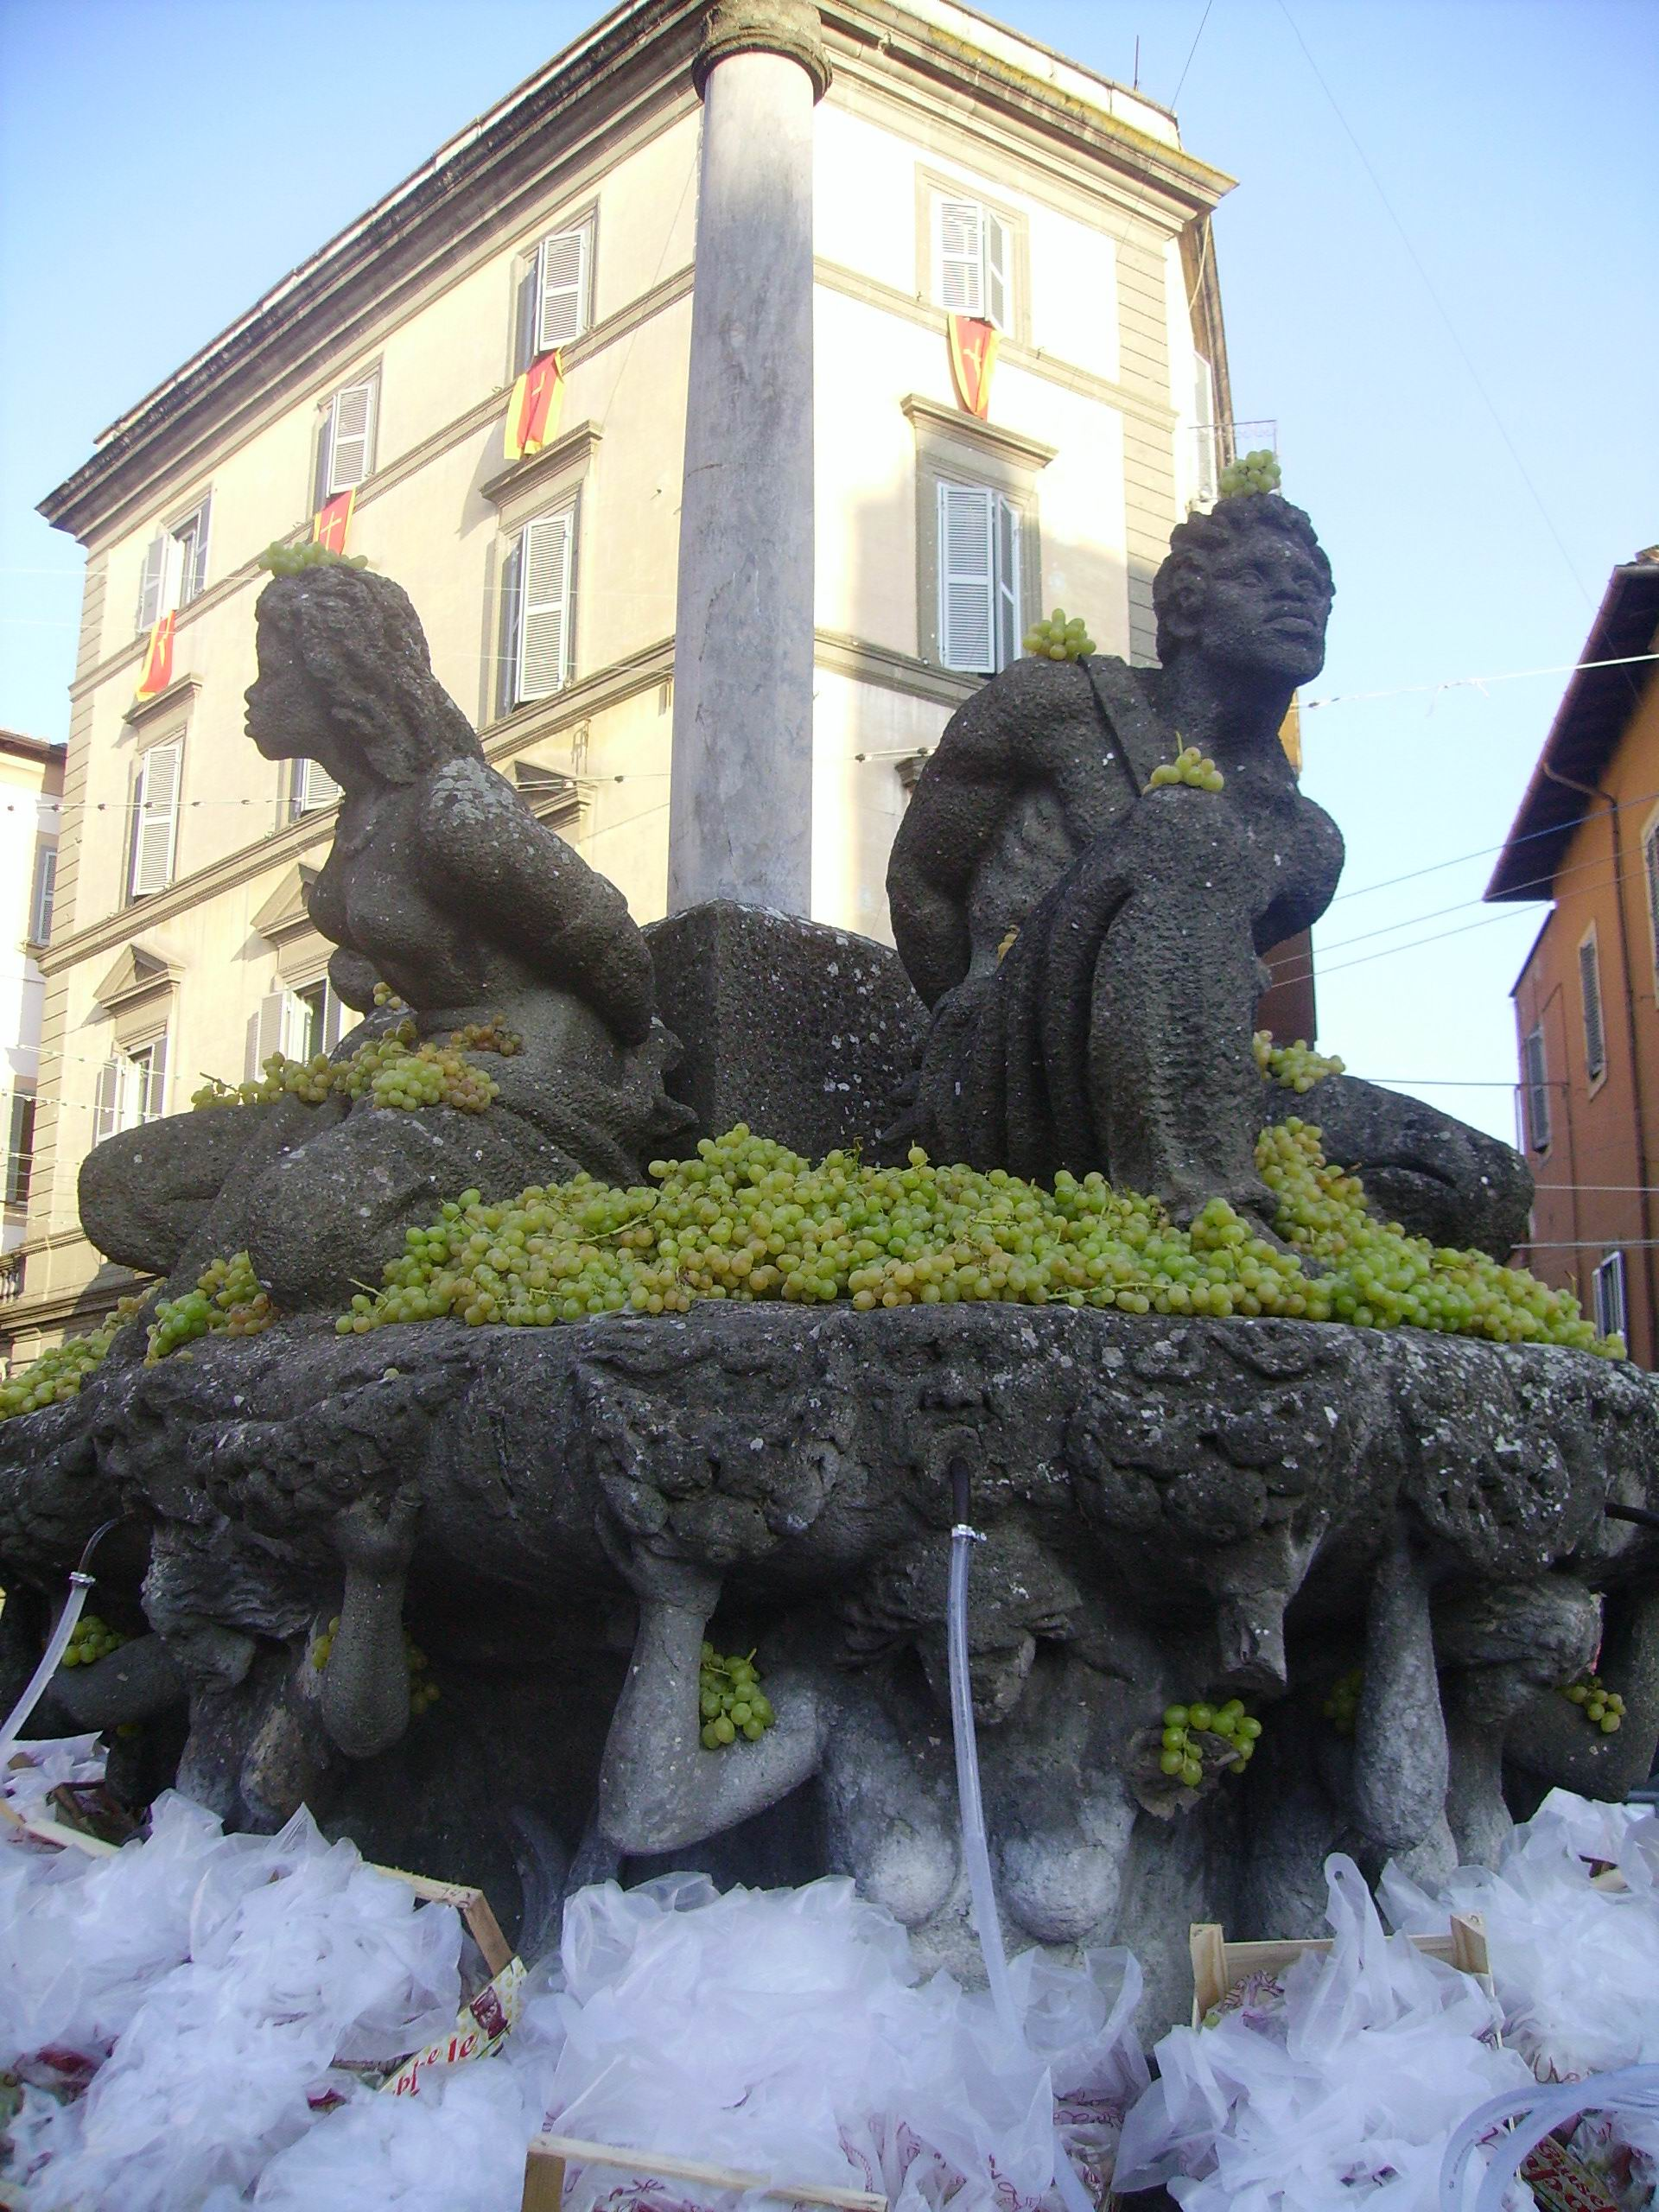 Marino's Main Fountain which Spouts Wine instead of Water